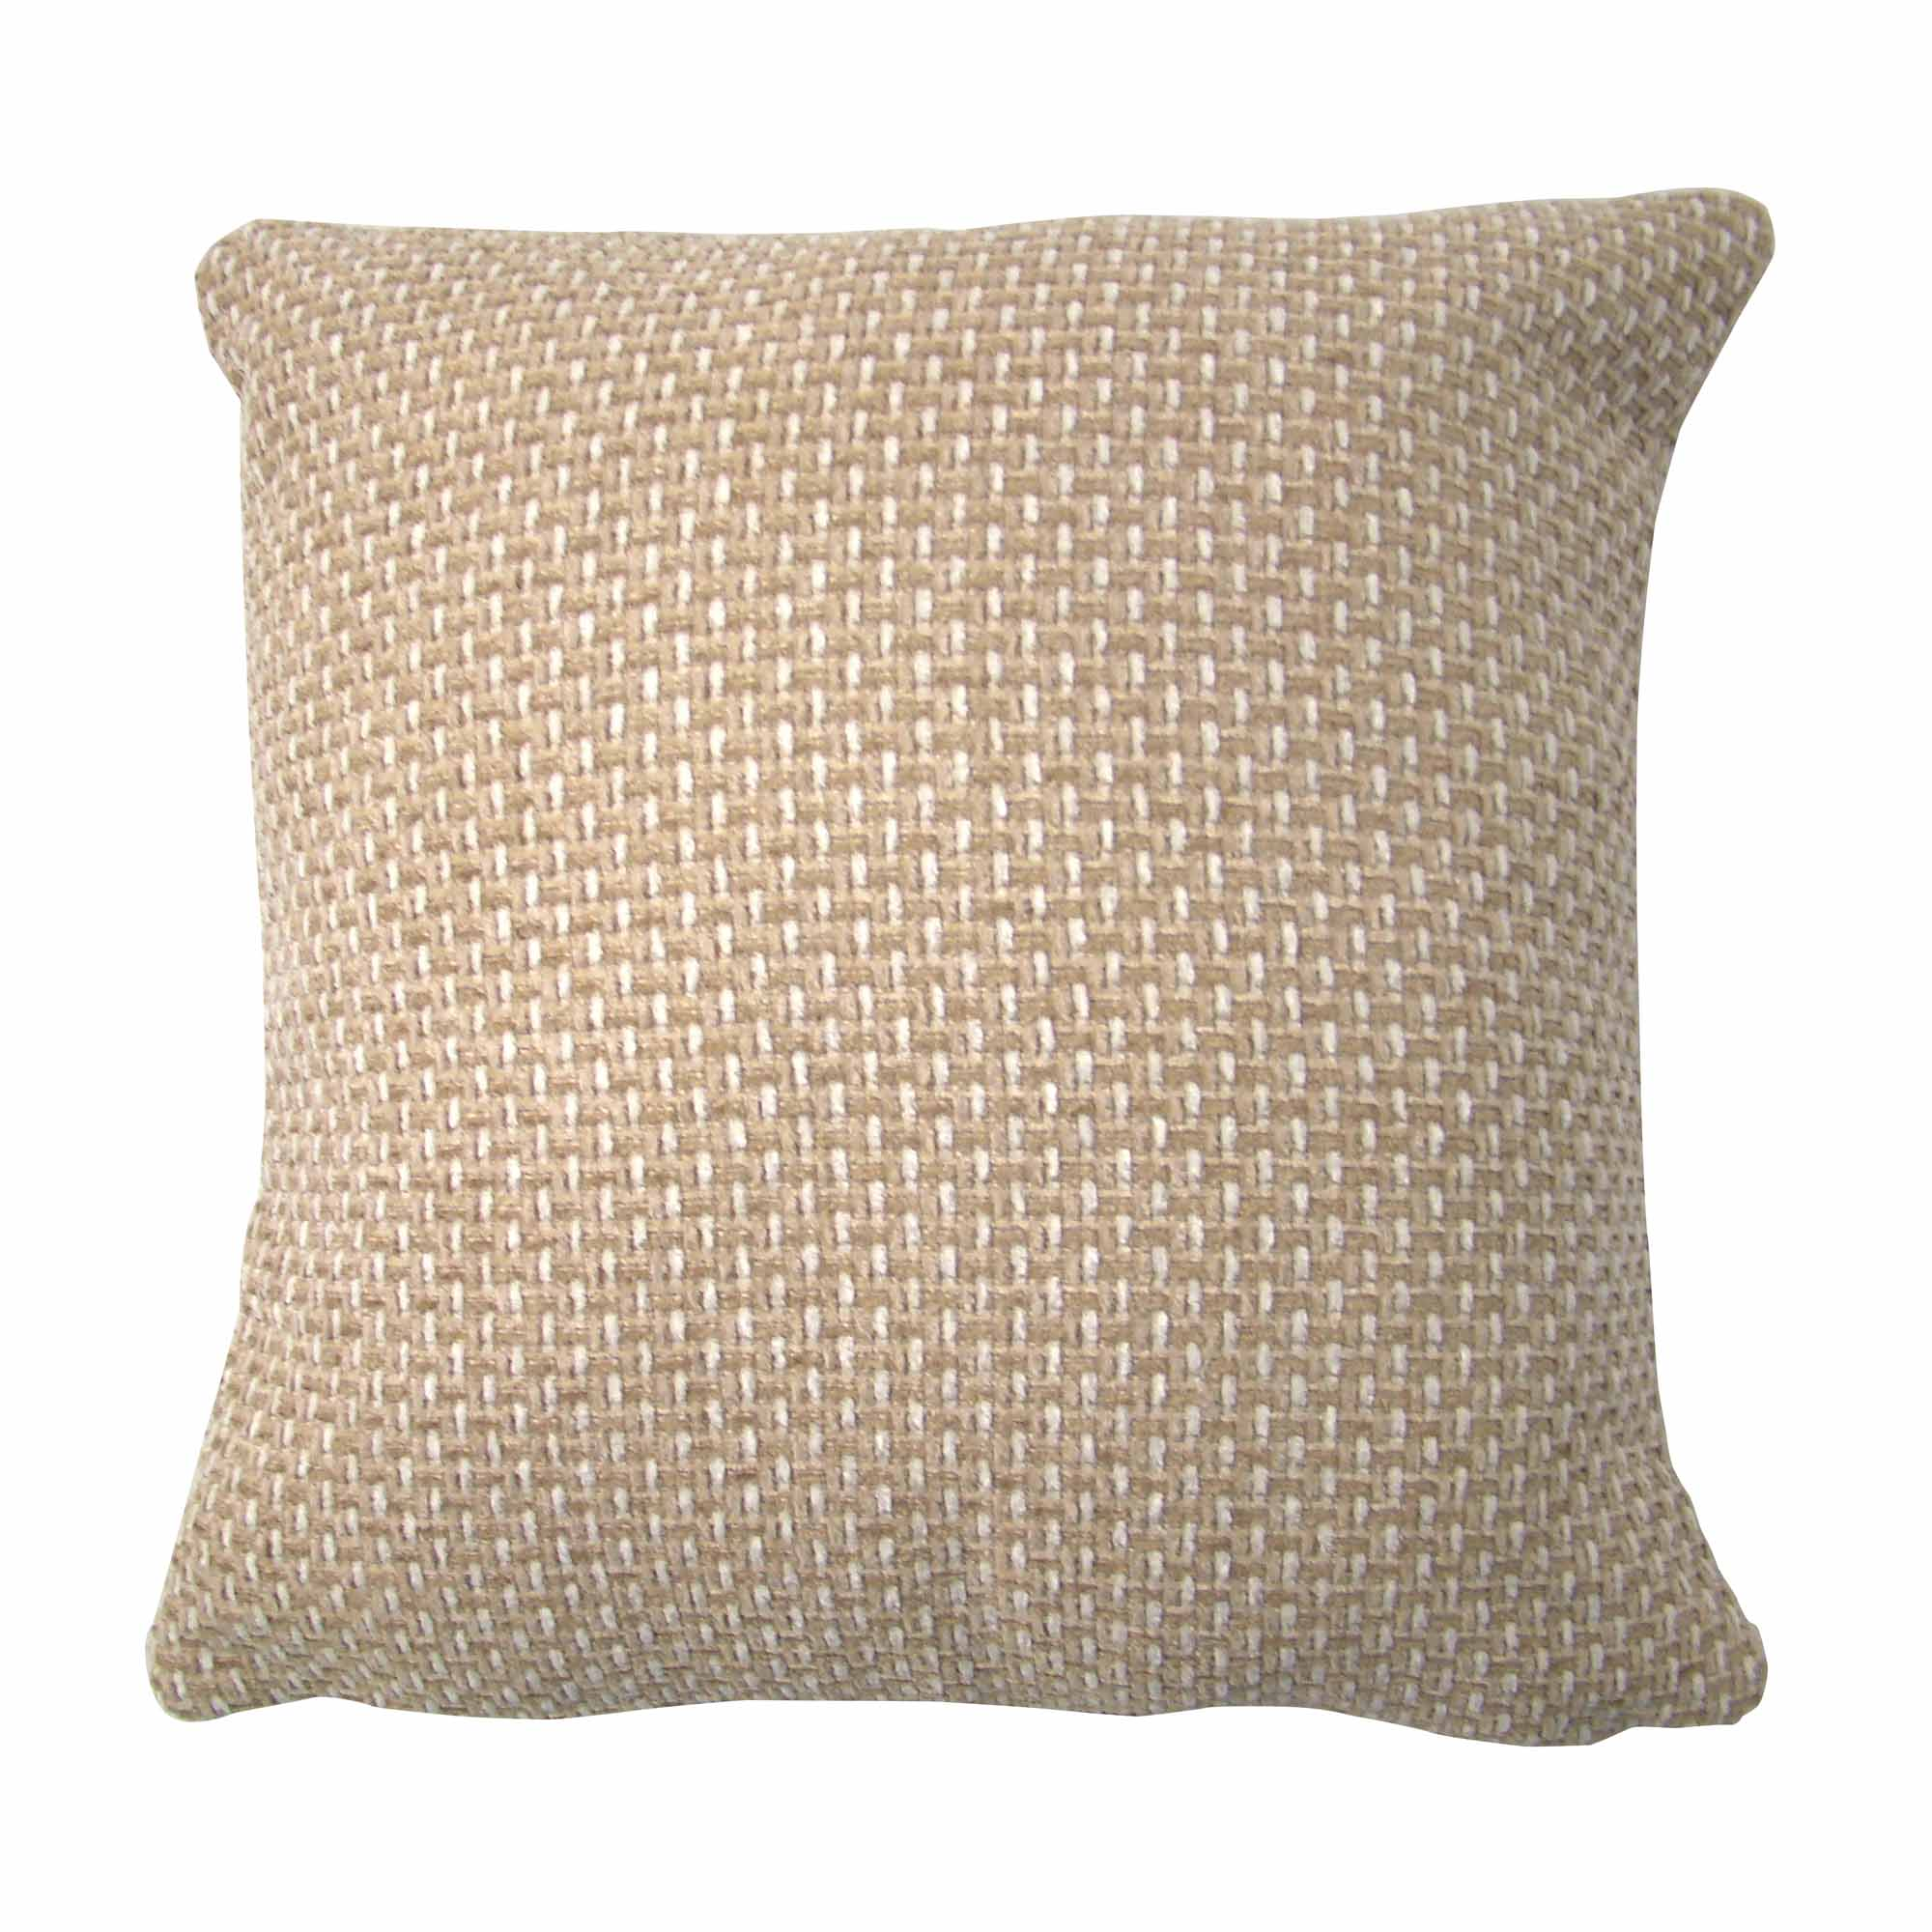 Tex Weave Cushion Cover